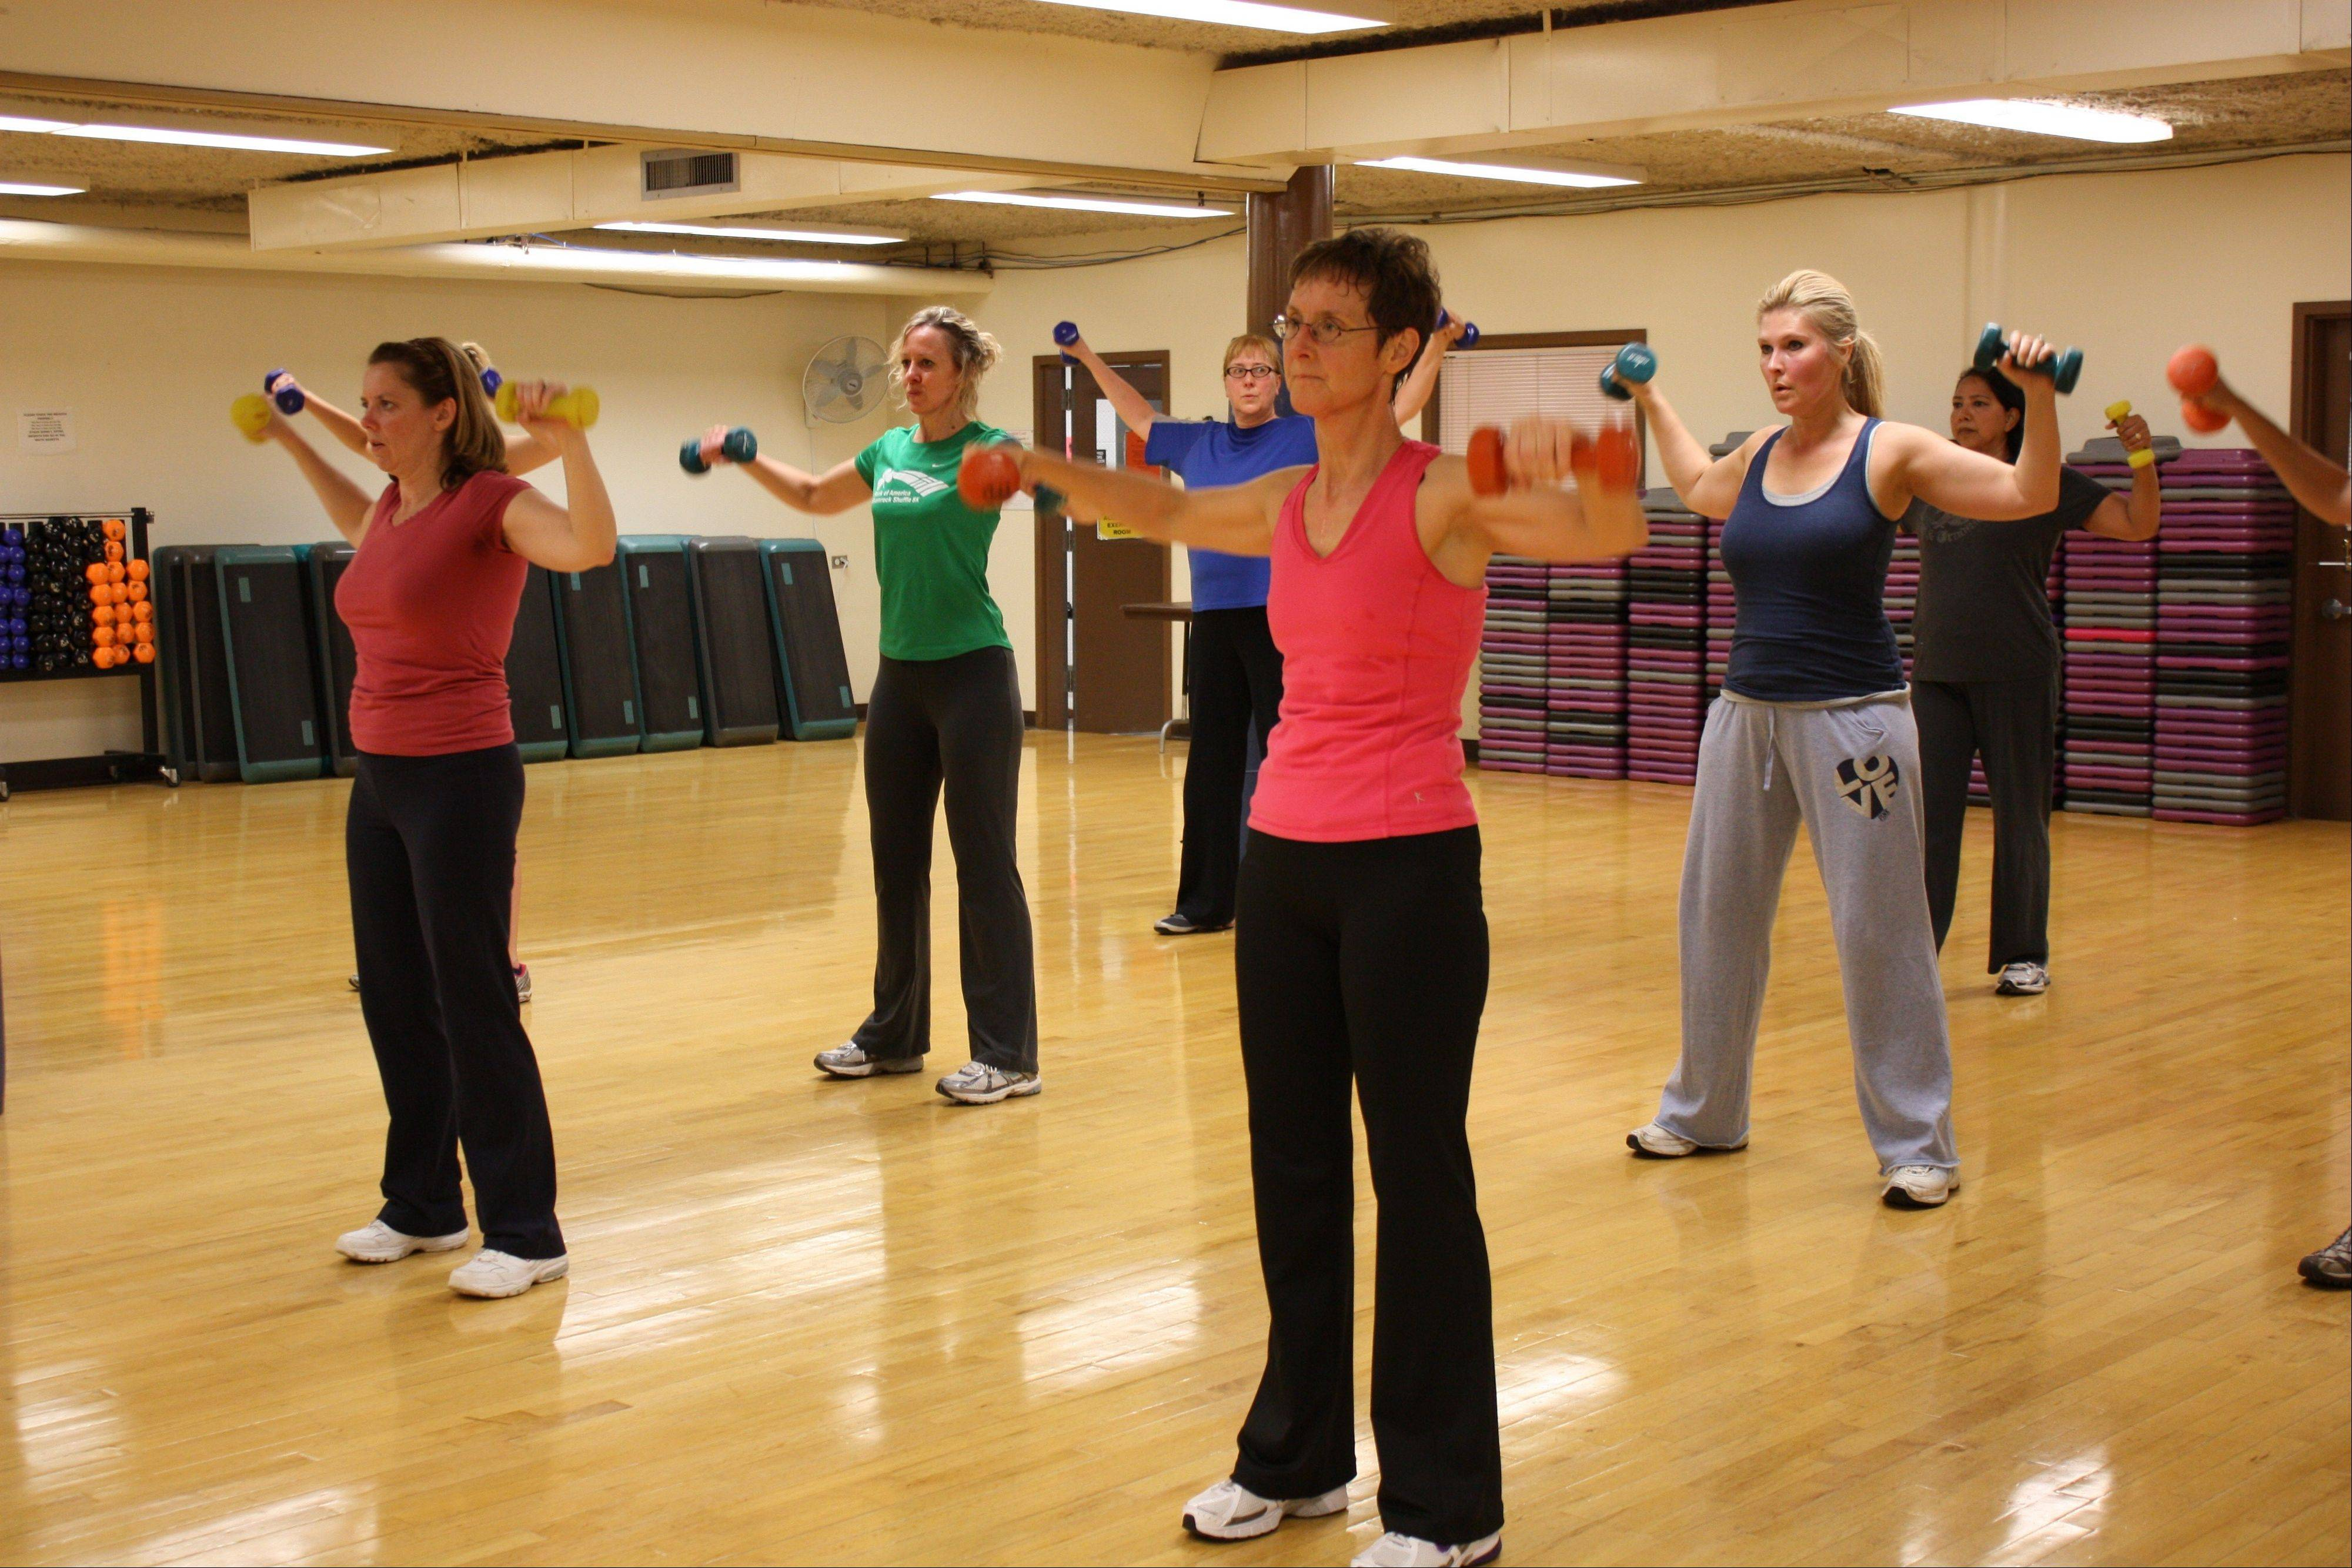 The Palatine Park District offers a variety of fitness classes and programs throughout the year. For a complete listing visit palatineparks.org.